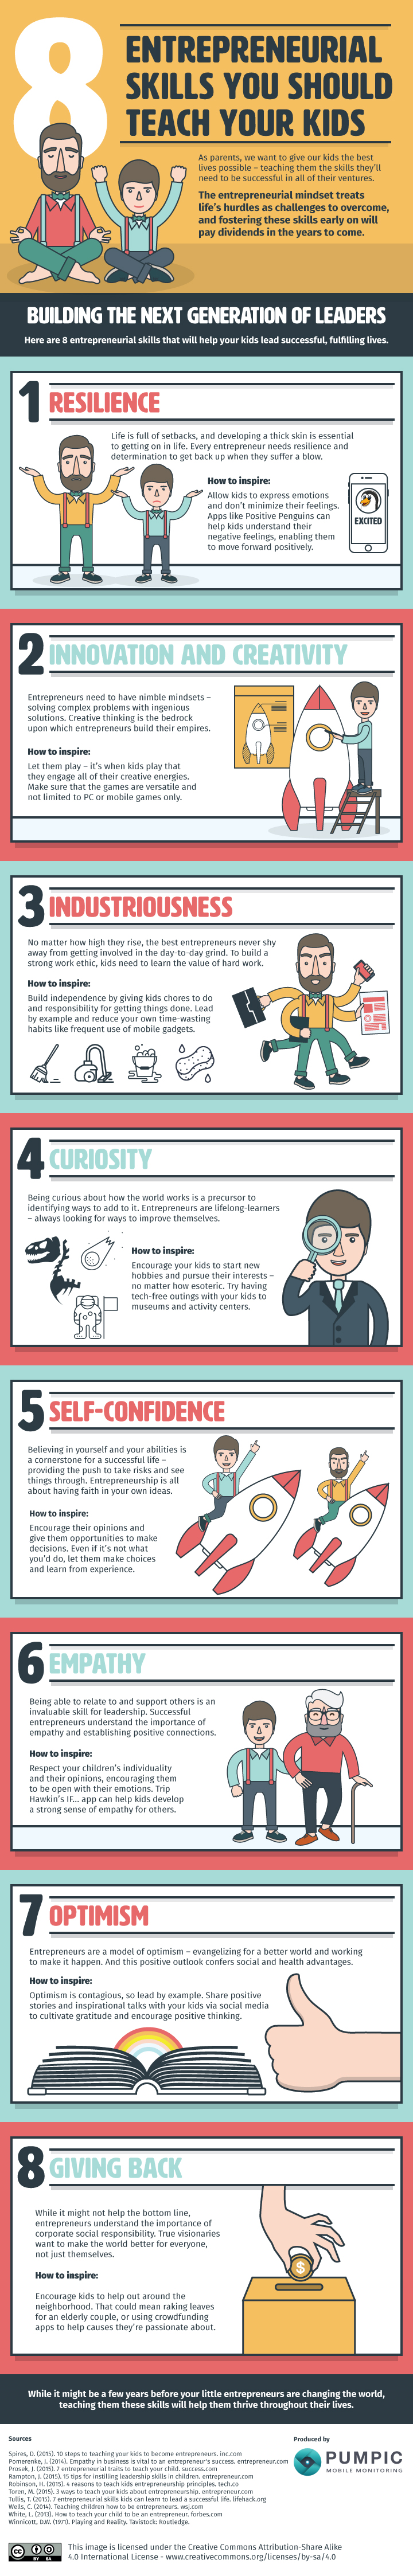 8 Entrepreneurial Skills Your Kids Need to Succeed in Life and Work (Infographic)